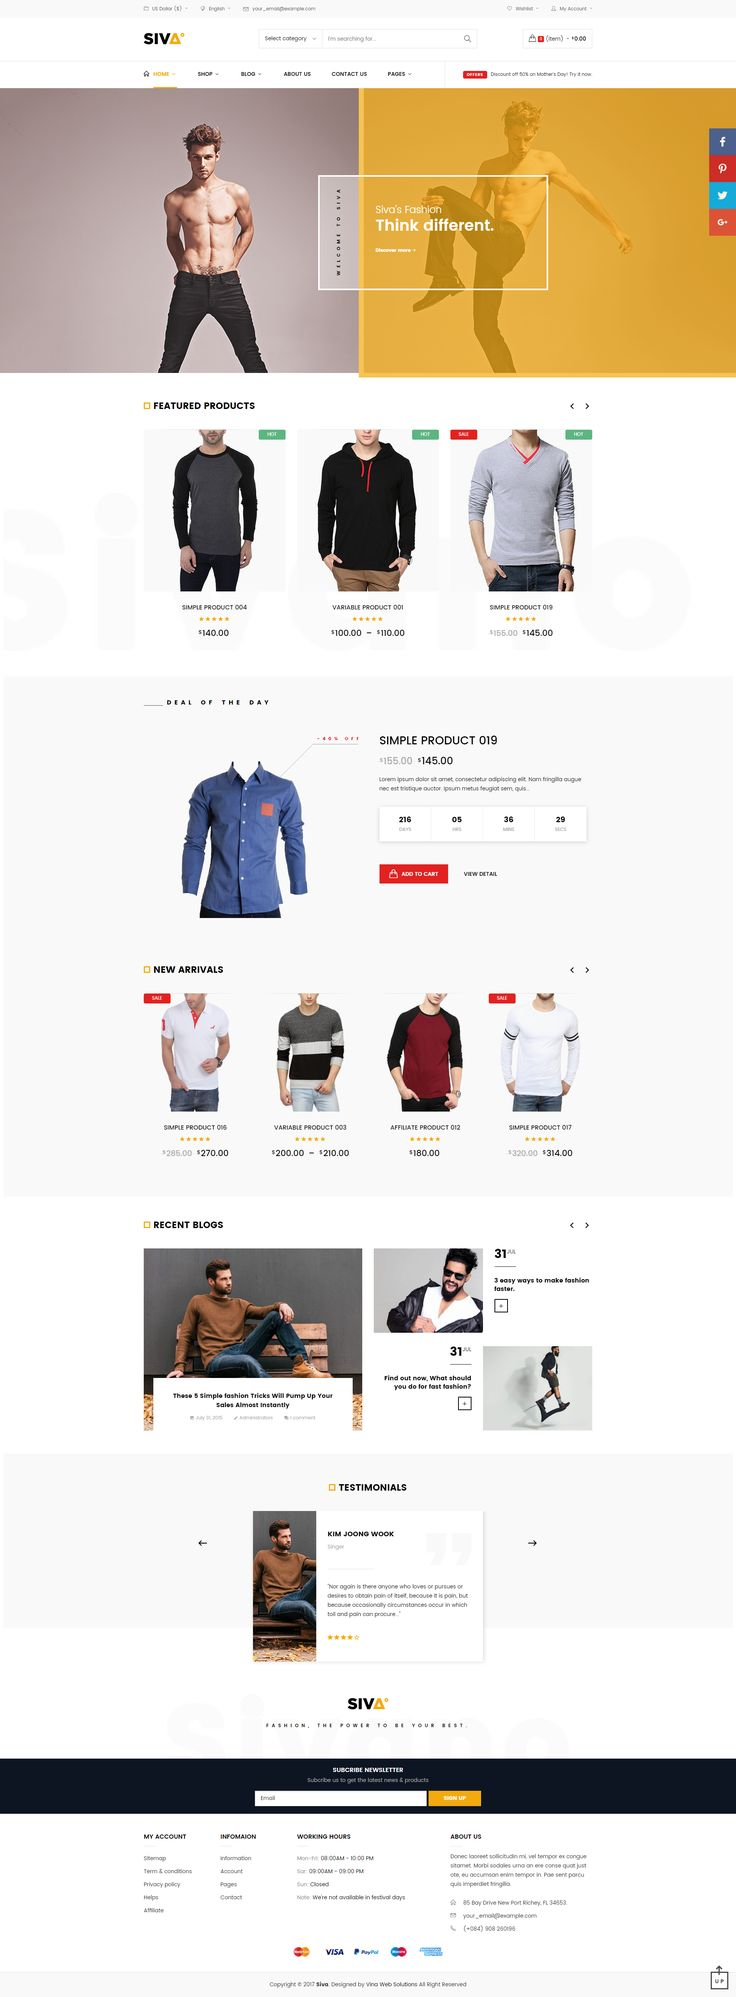 VG Siva is a creative, minimalist responsive #WooCommerce #WordPress themespecifically designed to adapt its display according to the device in use. It's packed with great features you can customize according to your brand. #design #wesite #theme